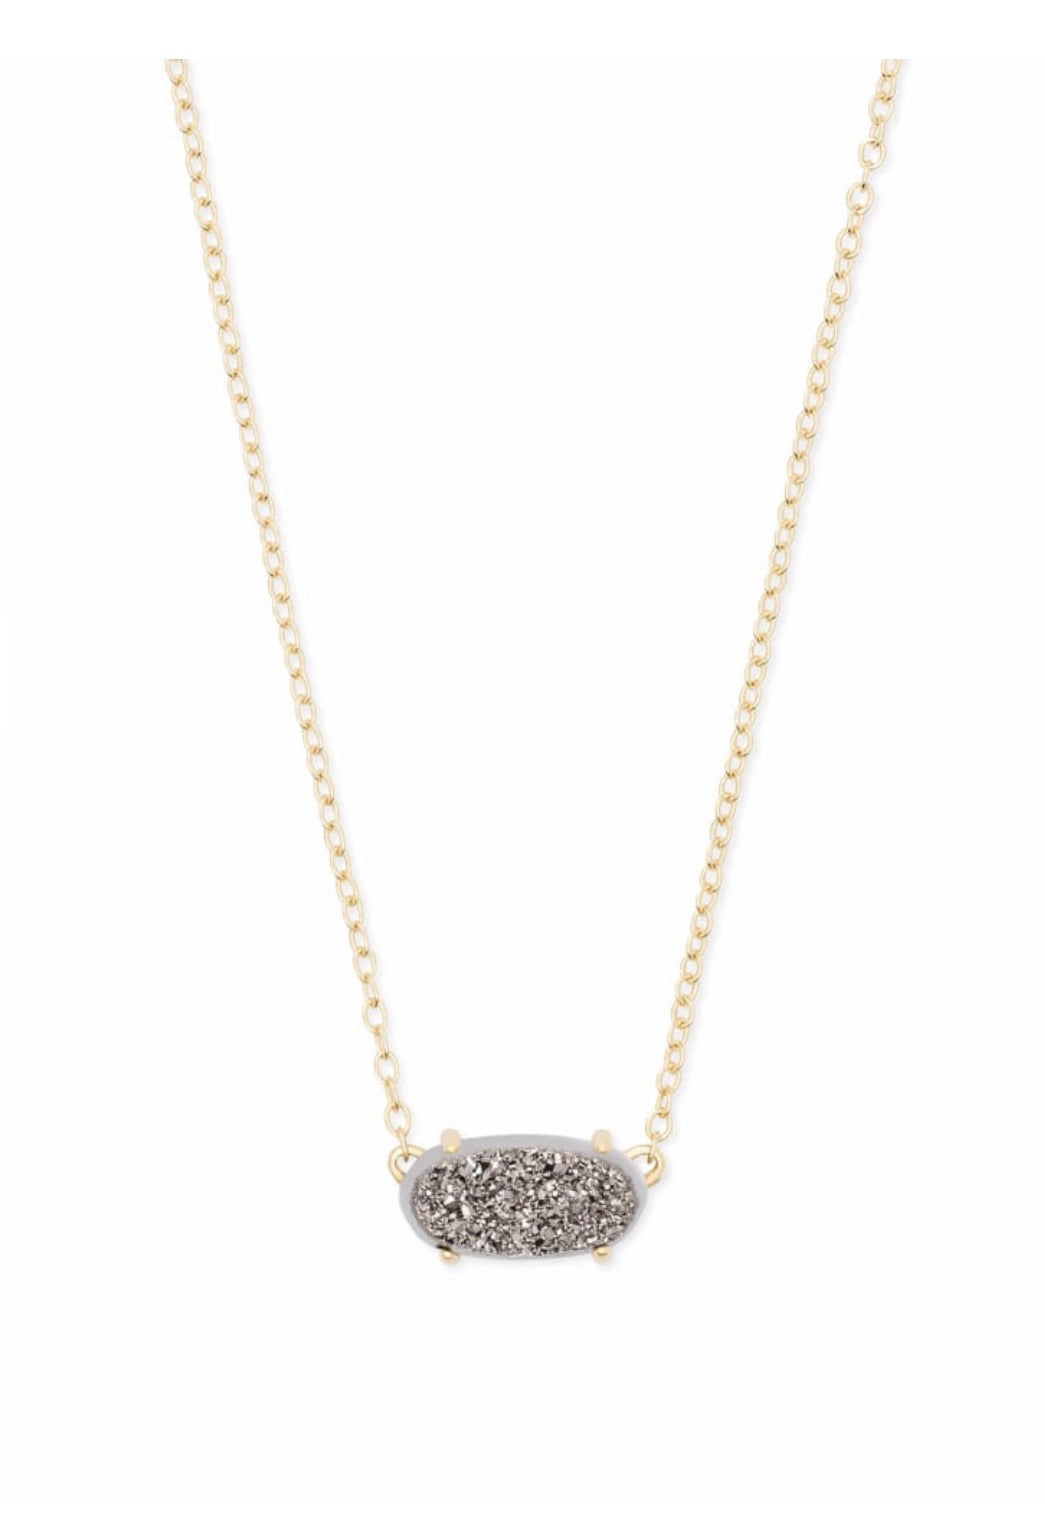 EVER GOLD PENDANT NECKLACE PLATINUM DRUSY